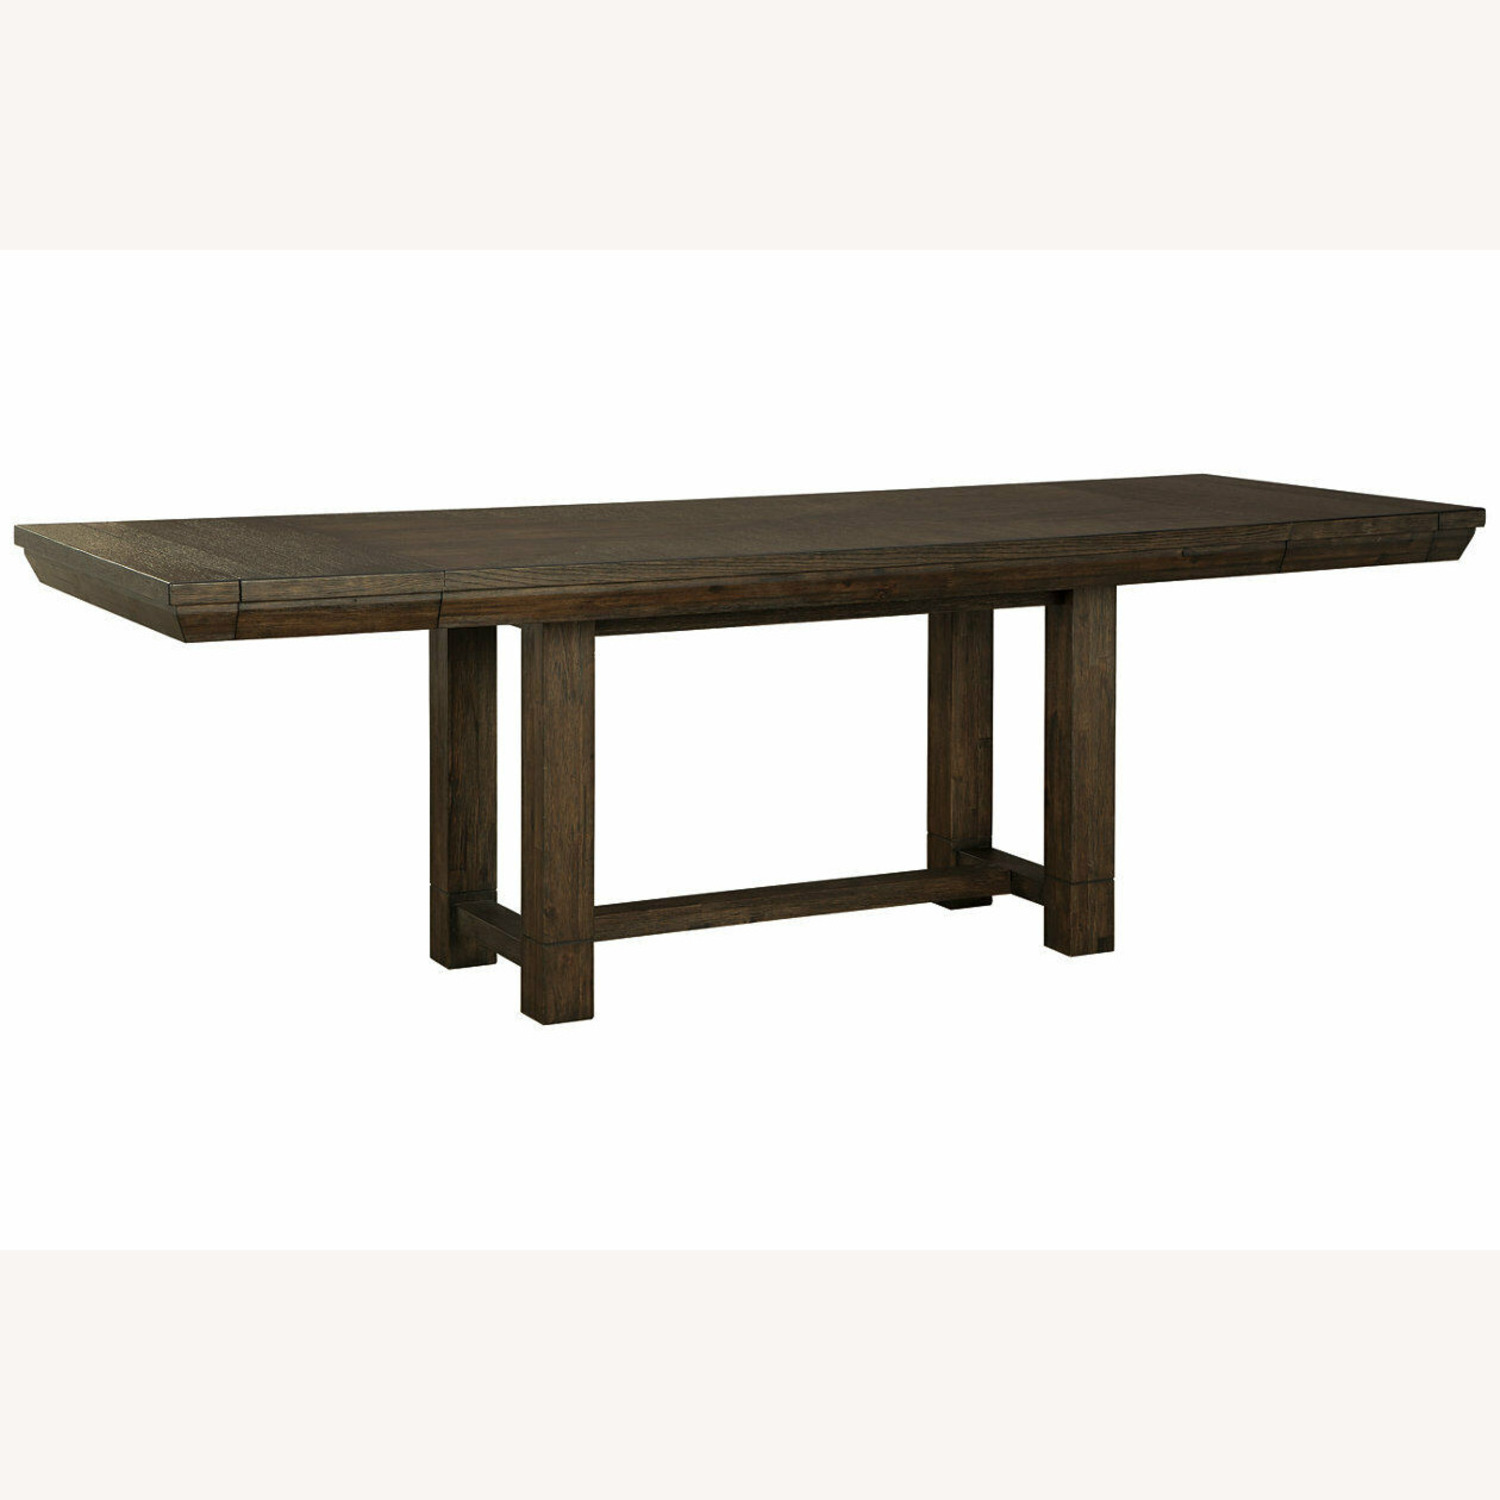 Ashley Furniture Dellbeck Extendable Dining Table - image-1